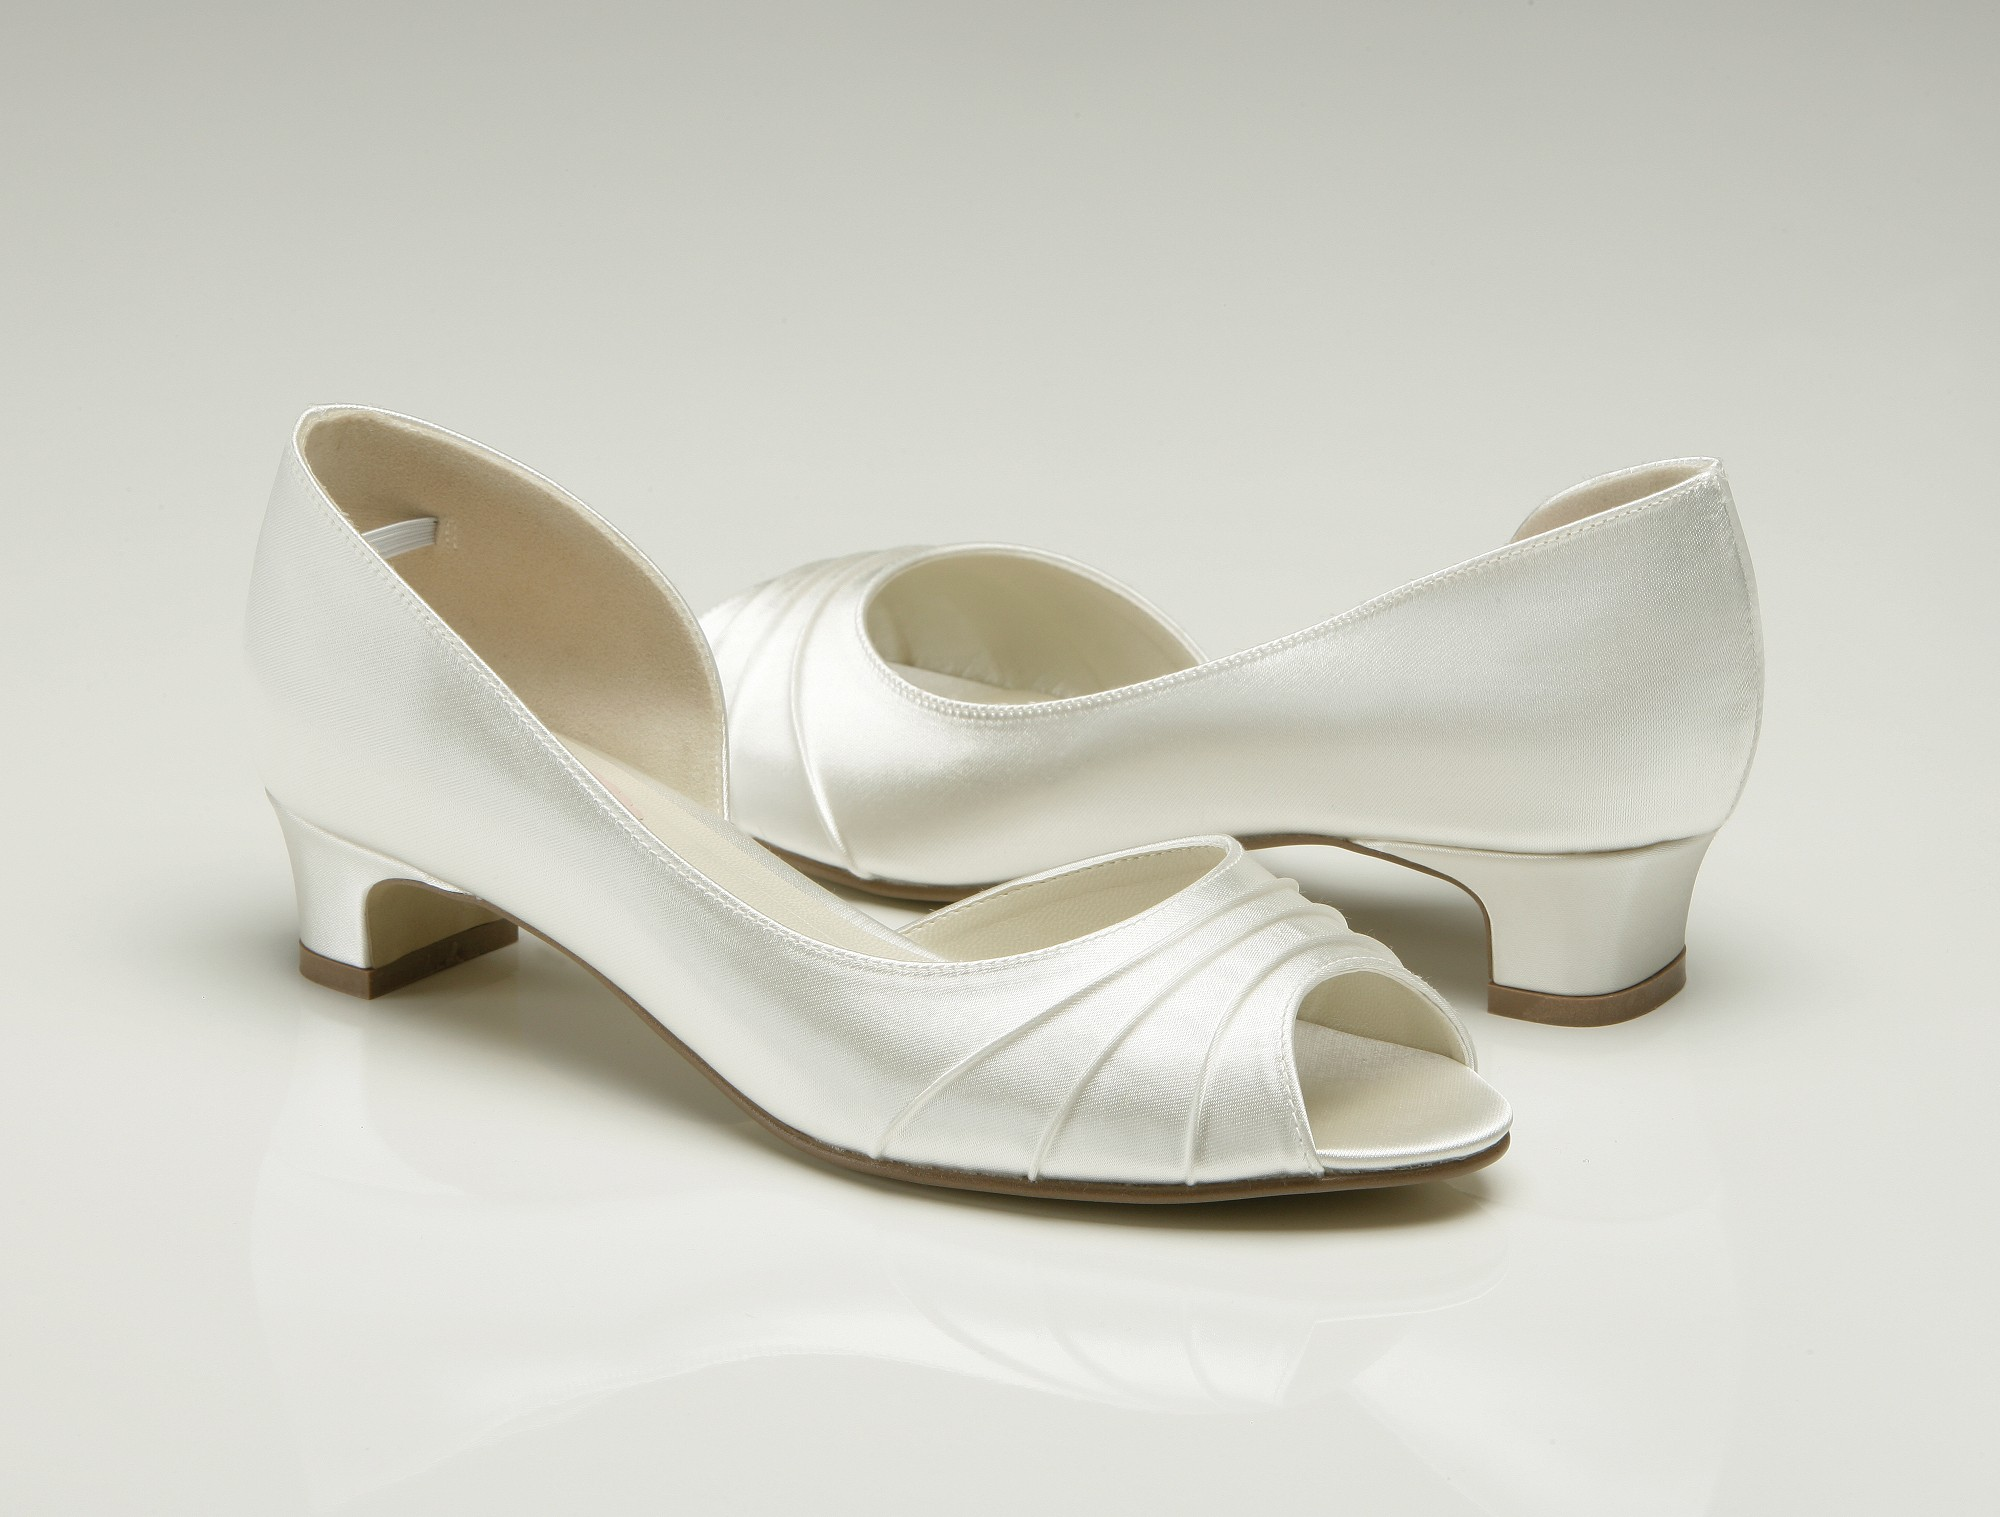 Bridal Shoes Low Heel 2014 Uk Wedges Flats Designer PHotos Pics Images Wallpapers Low Heel